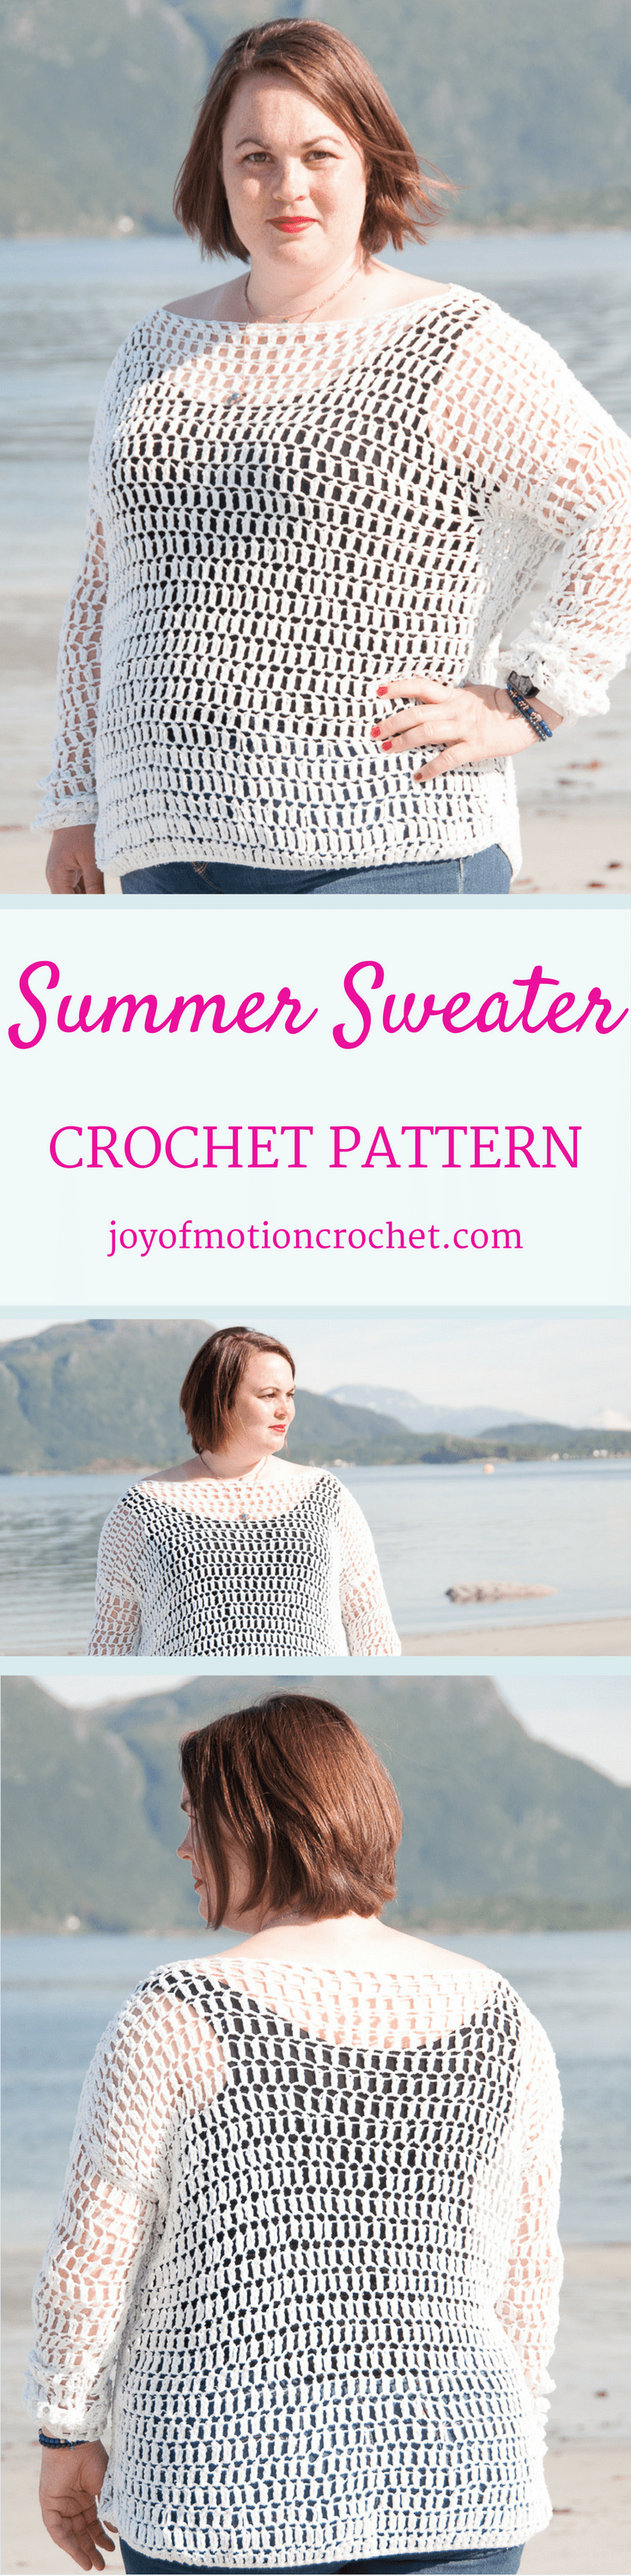 The Summer Sweater a crochet pattern. Woman's sweater crochet pattern with skill level easy. Make this fashionable crochet sweater with you own hook & yarn. Sweater crochet pattern easy for her . Crochet sweater | woman's crochet sweater | crochet pattern for her | fashionable crochet sweater | interesting crochet sweater | click to learn more or repin to save it forever.